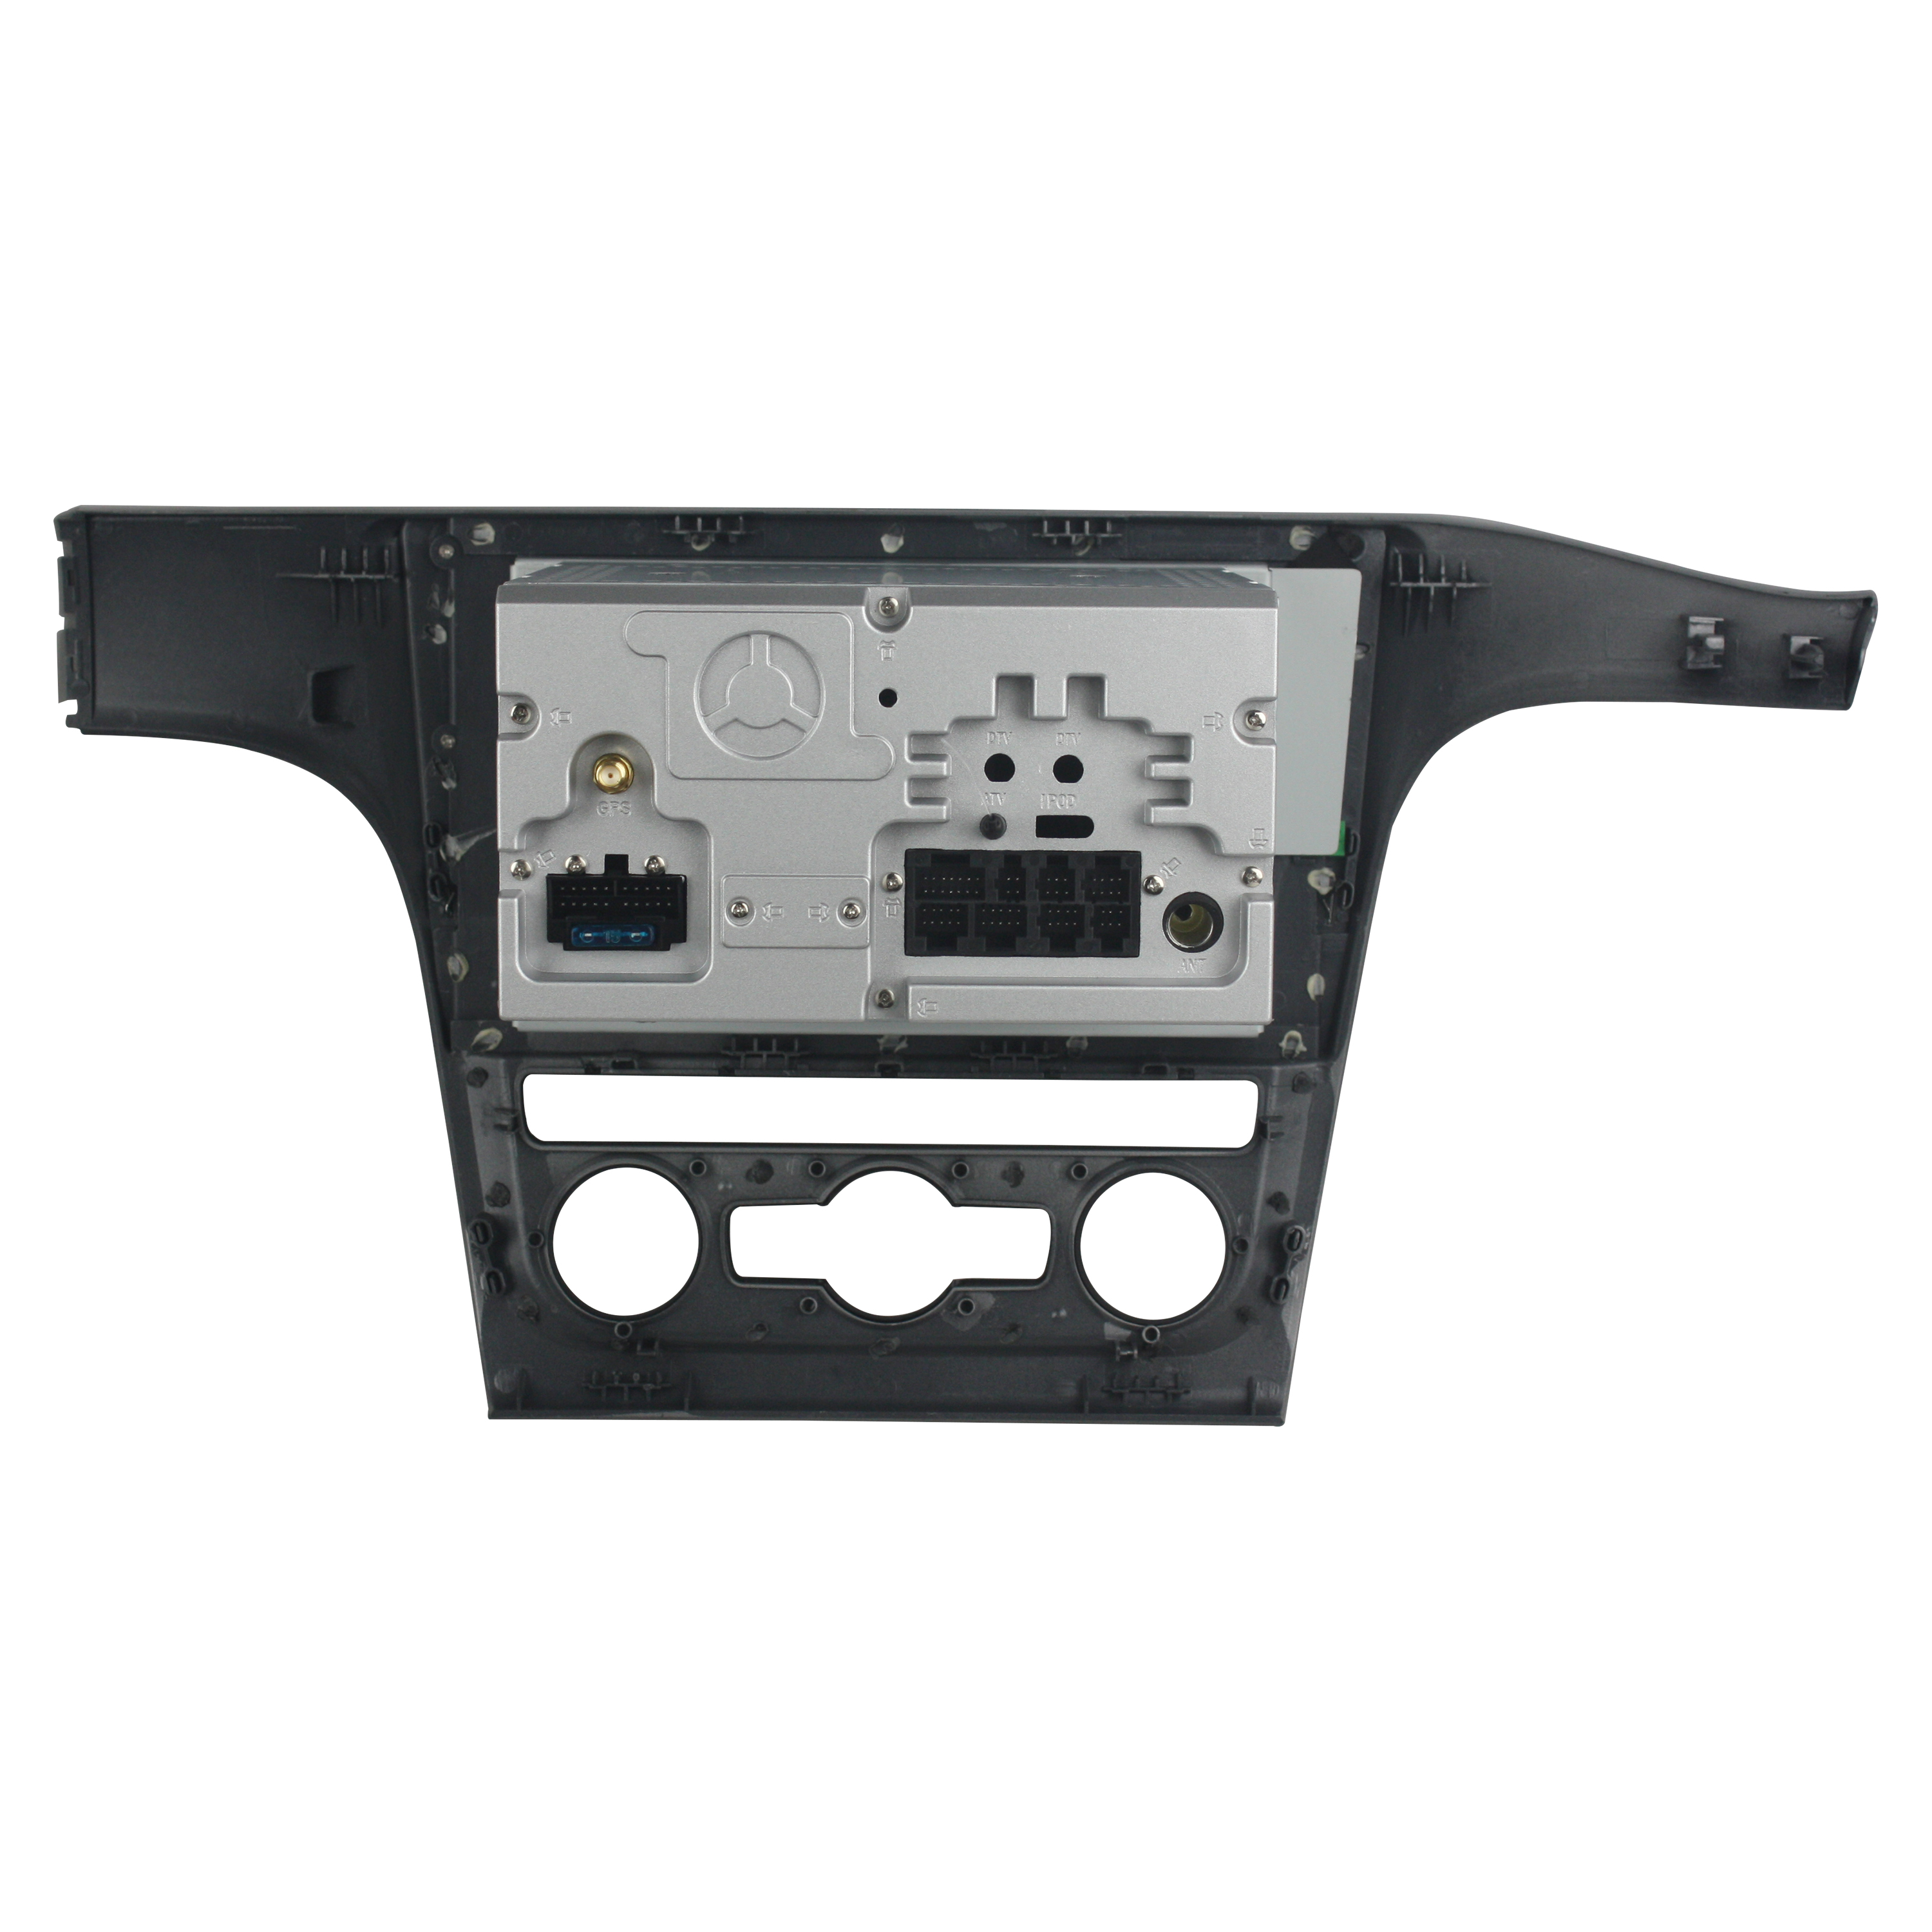 10.1 inch car DVD for VW PASSAT 2013-2014